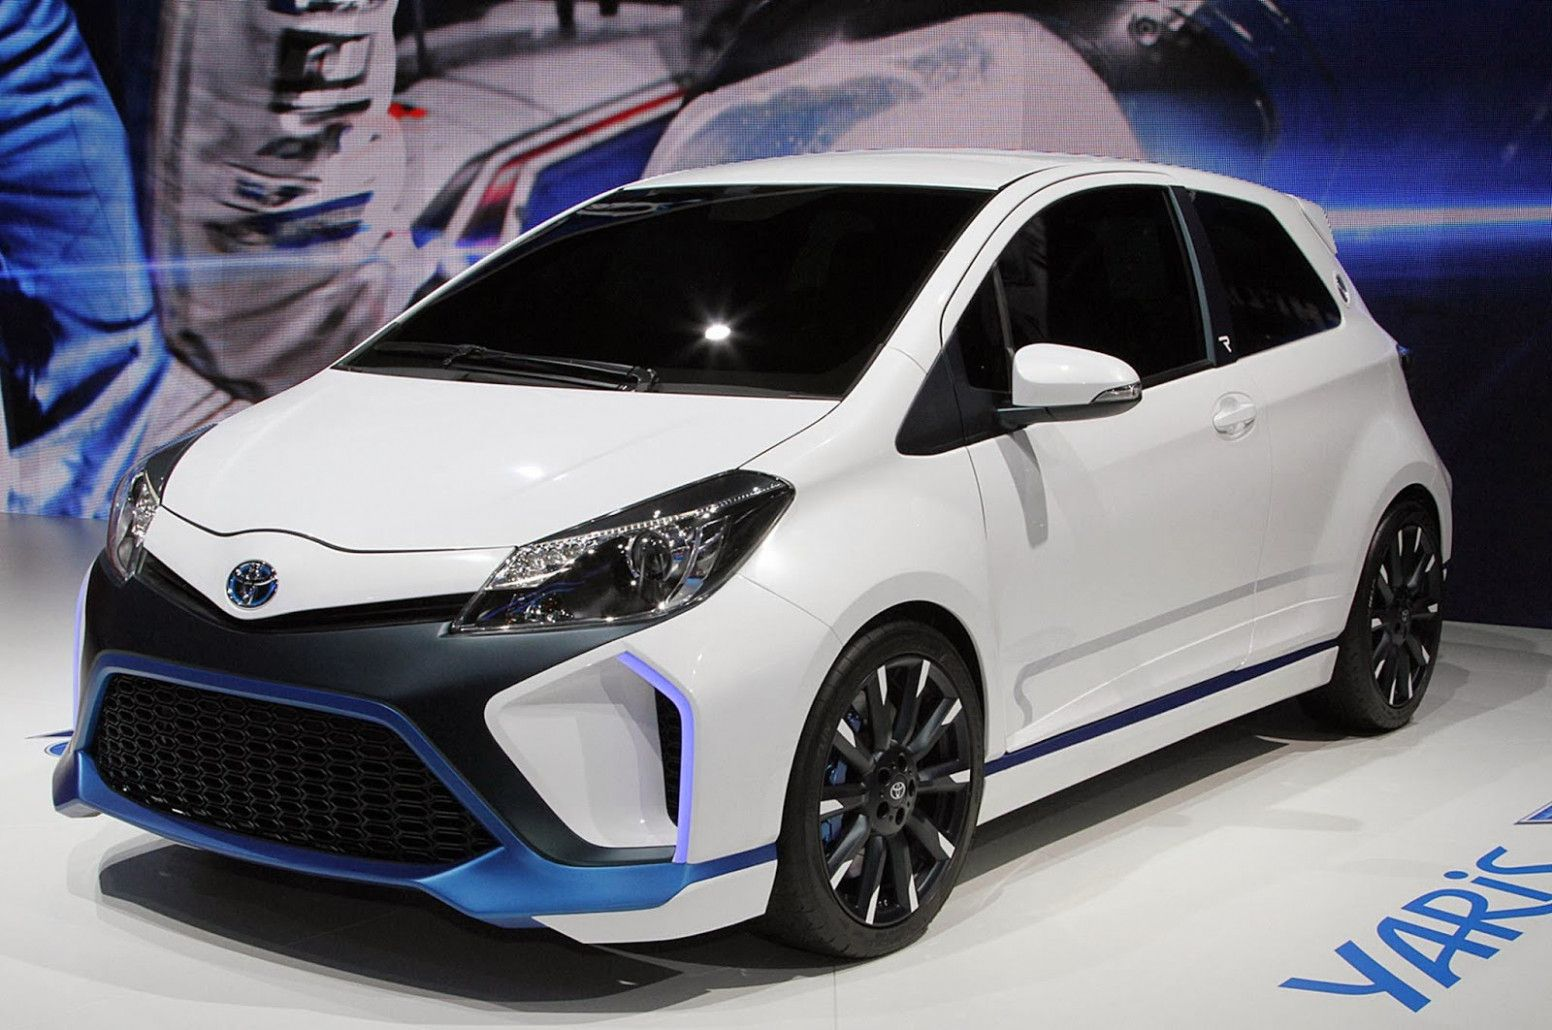 7 Picture Toyota Vitz 2020 Price In Pakistan In 2020 Toyota Yaris Toyota Dealers